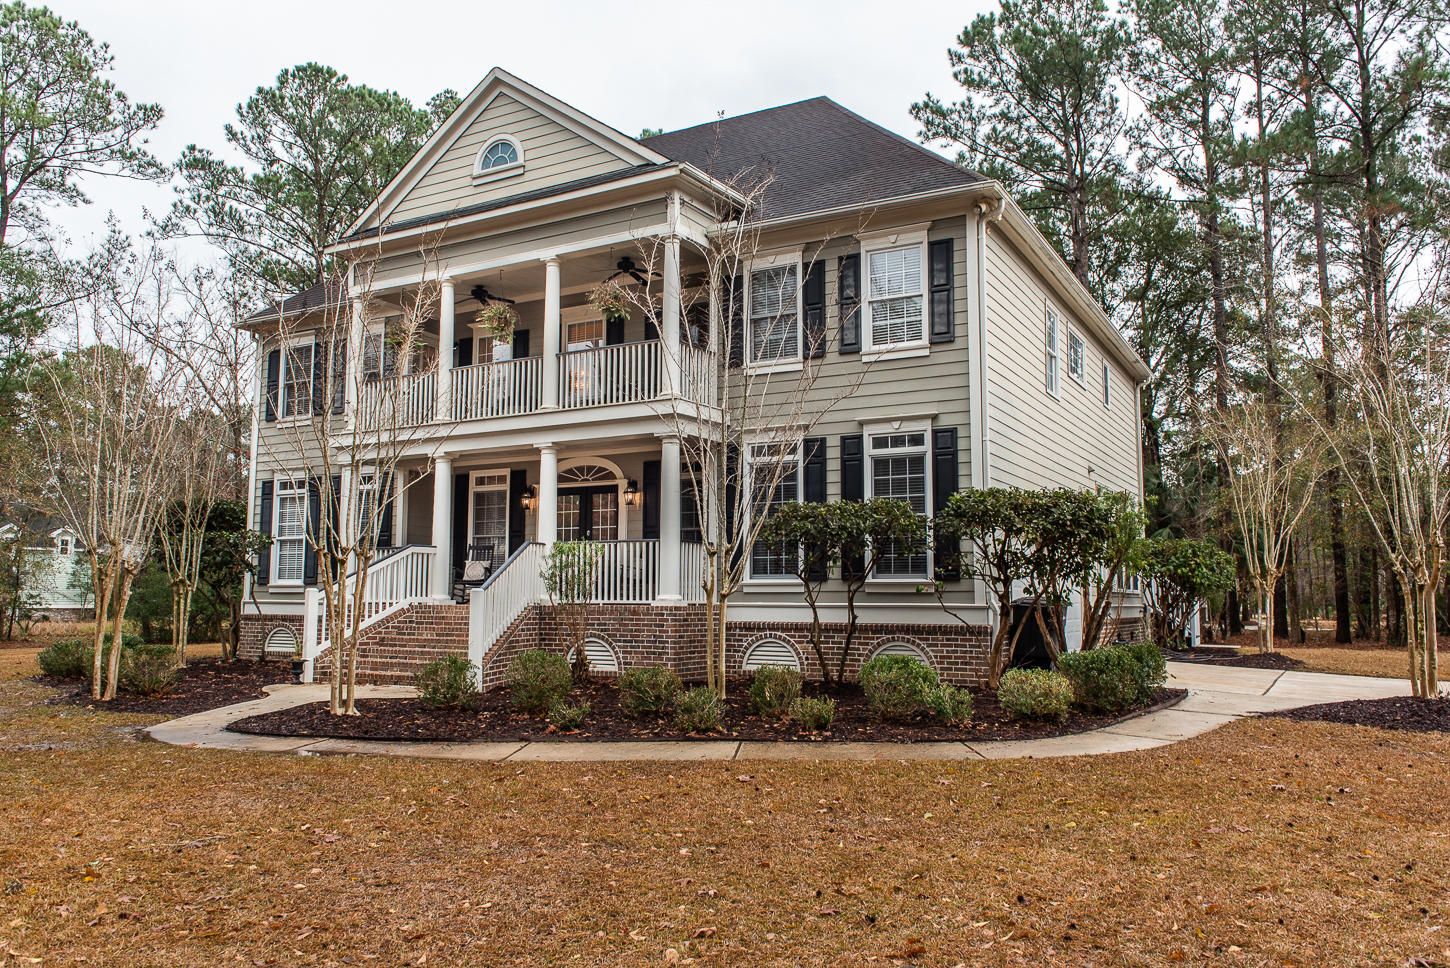 Dunes West Homes For Sale - 1794 Shell Ring, Mount Pleasant, SC - 38